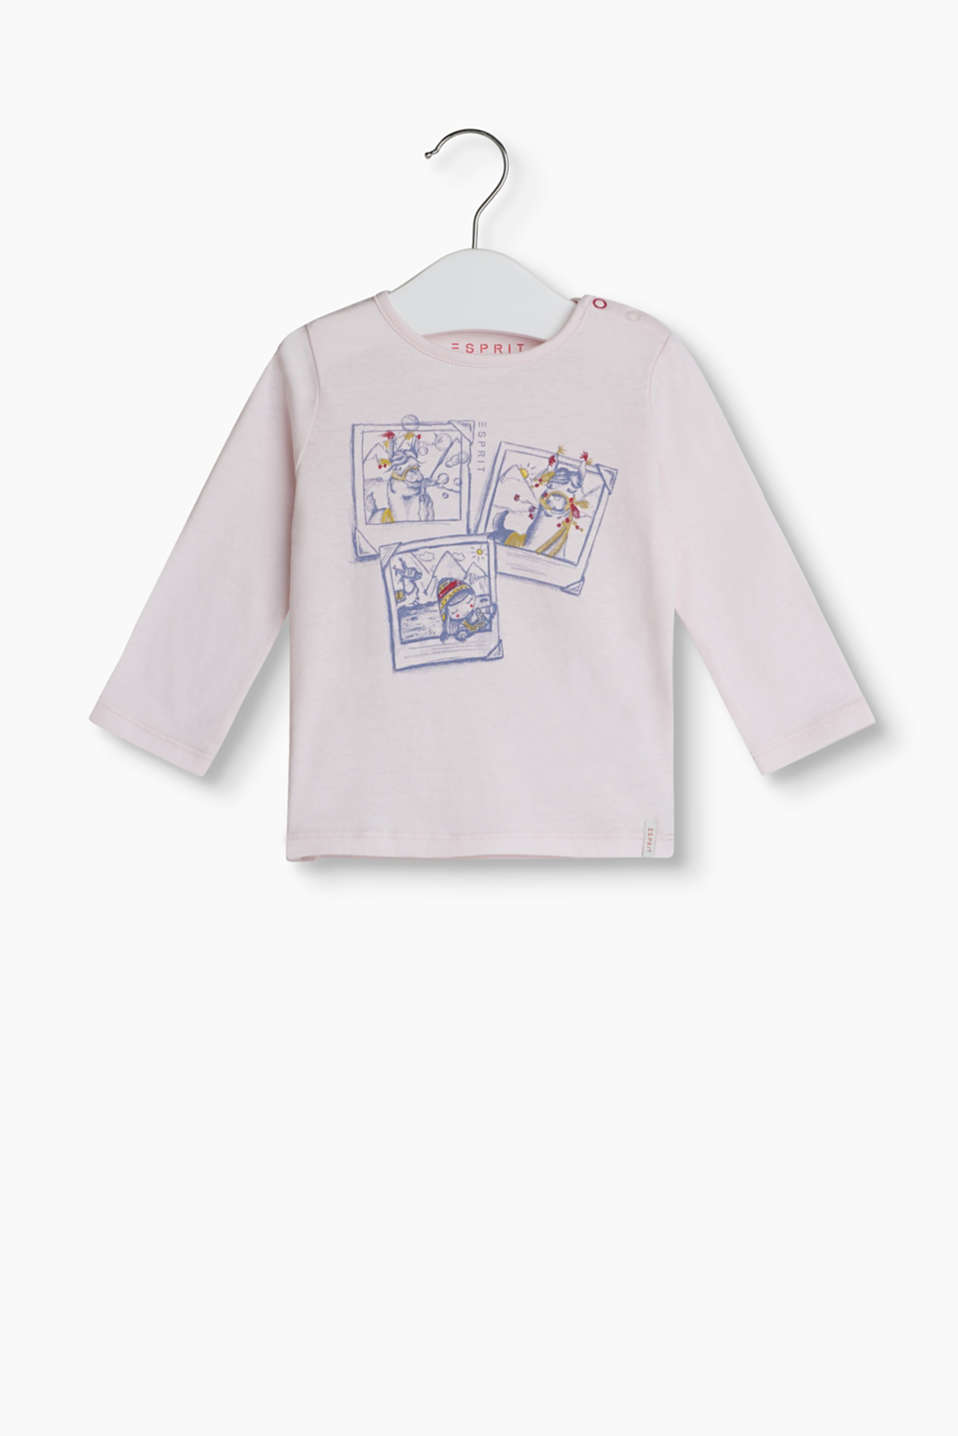 With a funny Polaroid print: long sleeve top made of soft cotton-jersey